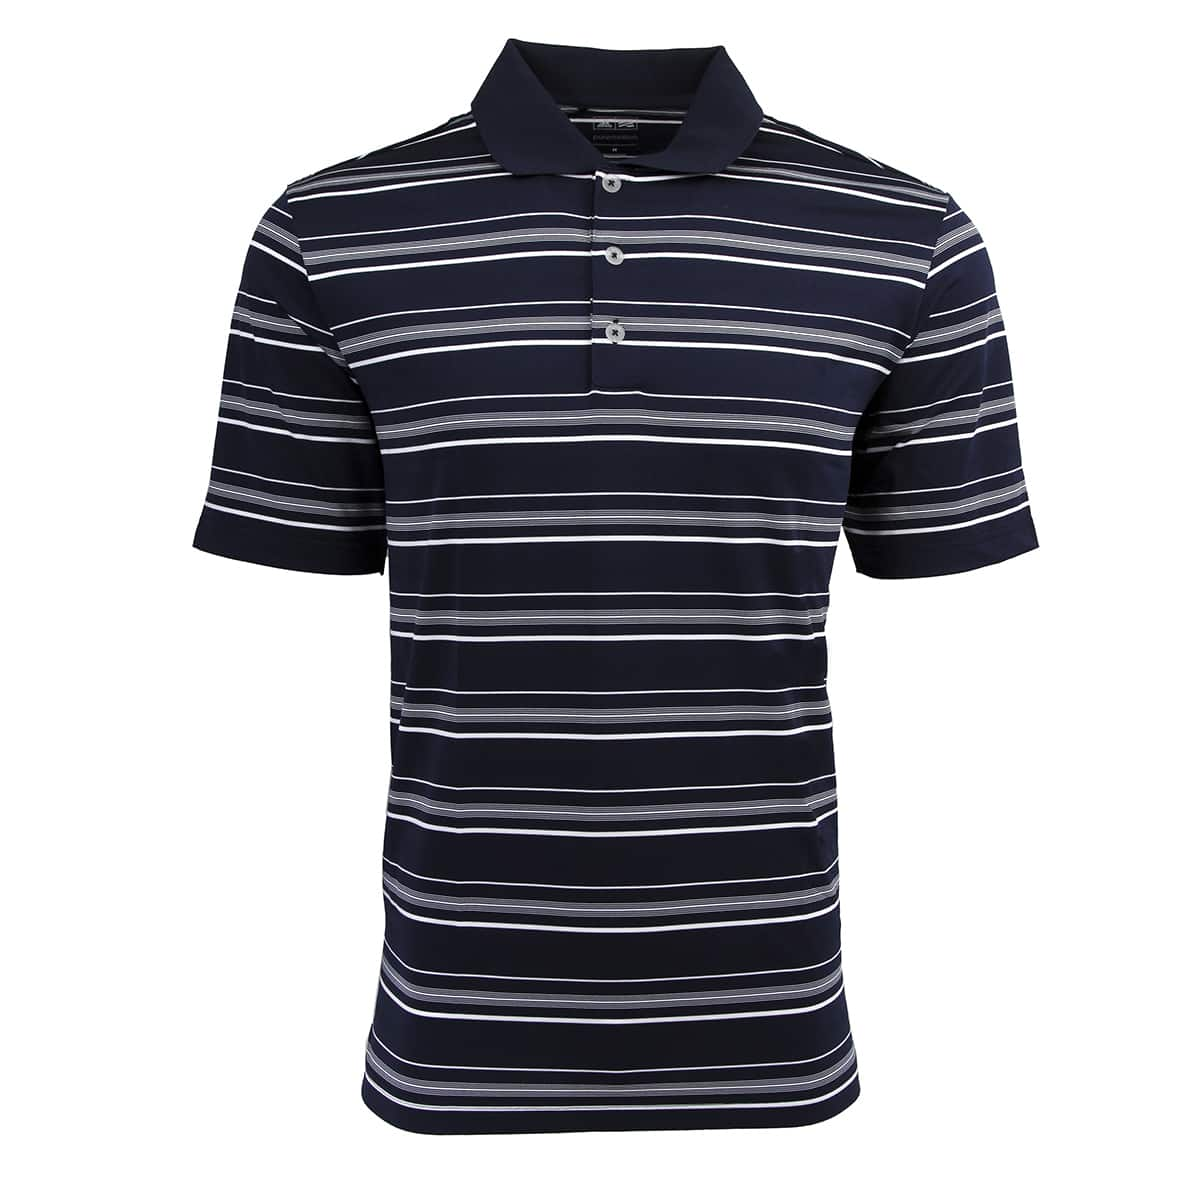 Adidas Men's Puremotion Textured Stripe Polo $17.99 + Free Shipping (eBay Daily Deal)